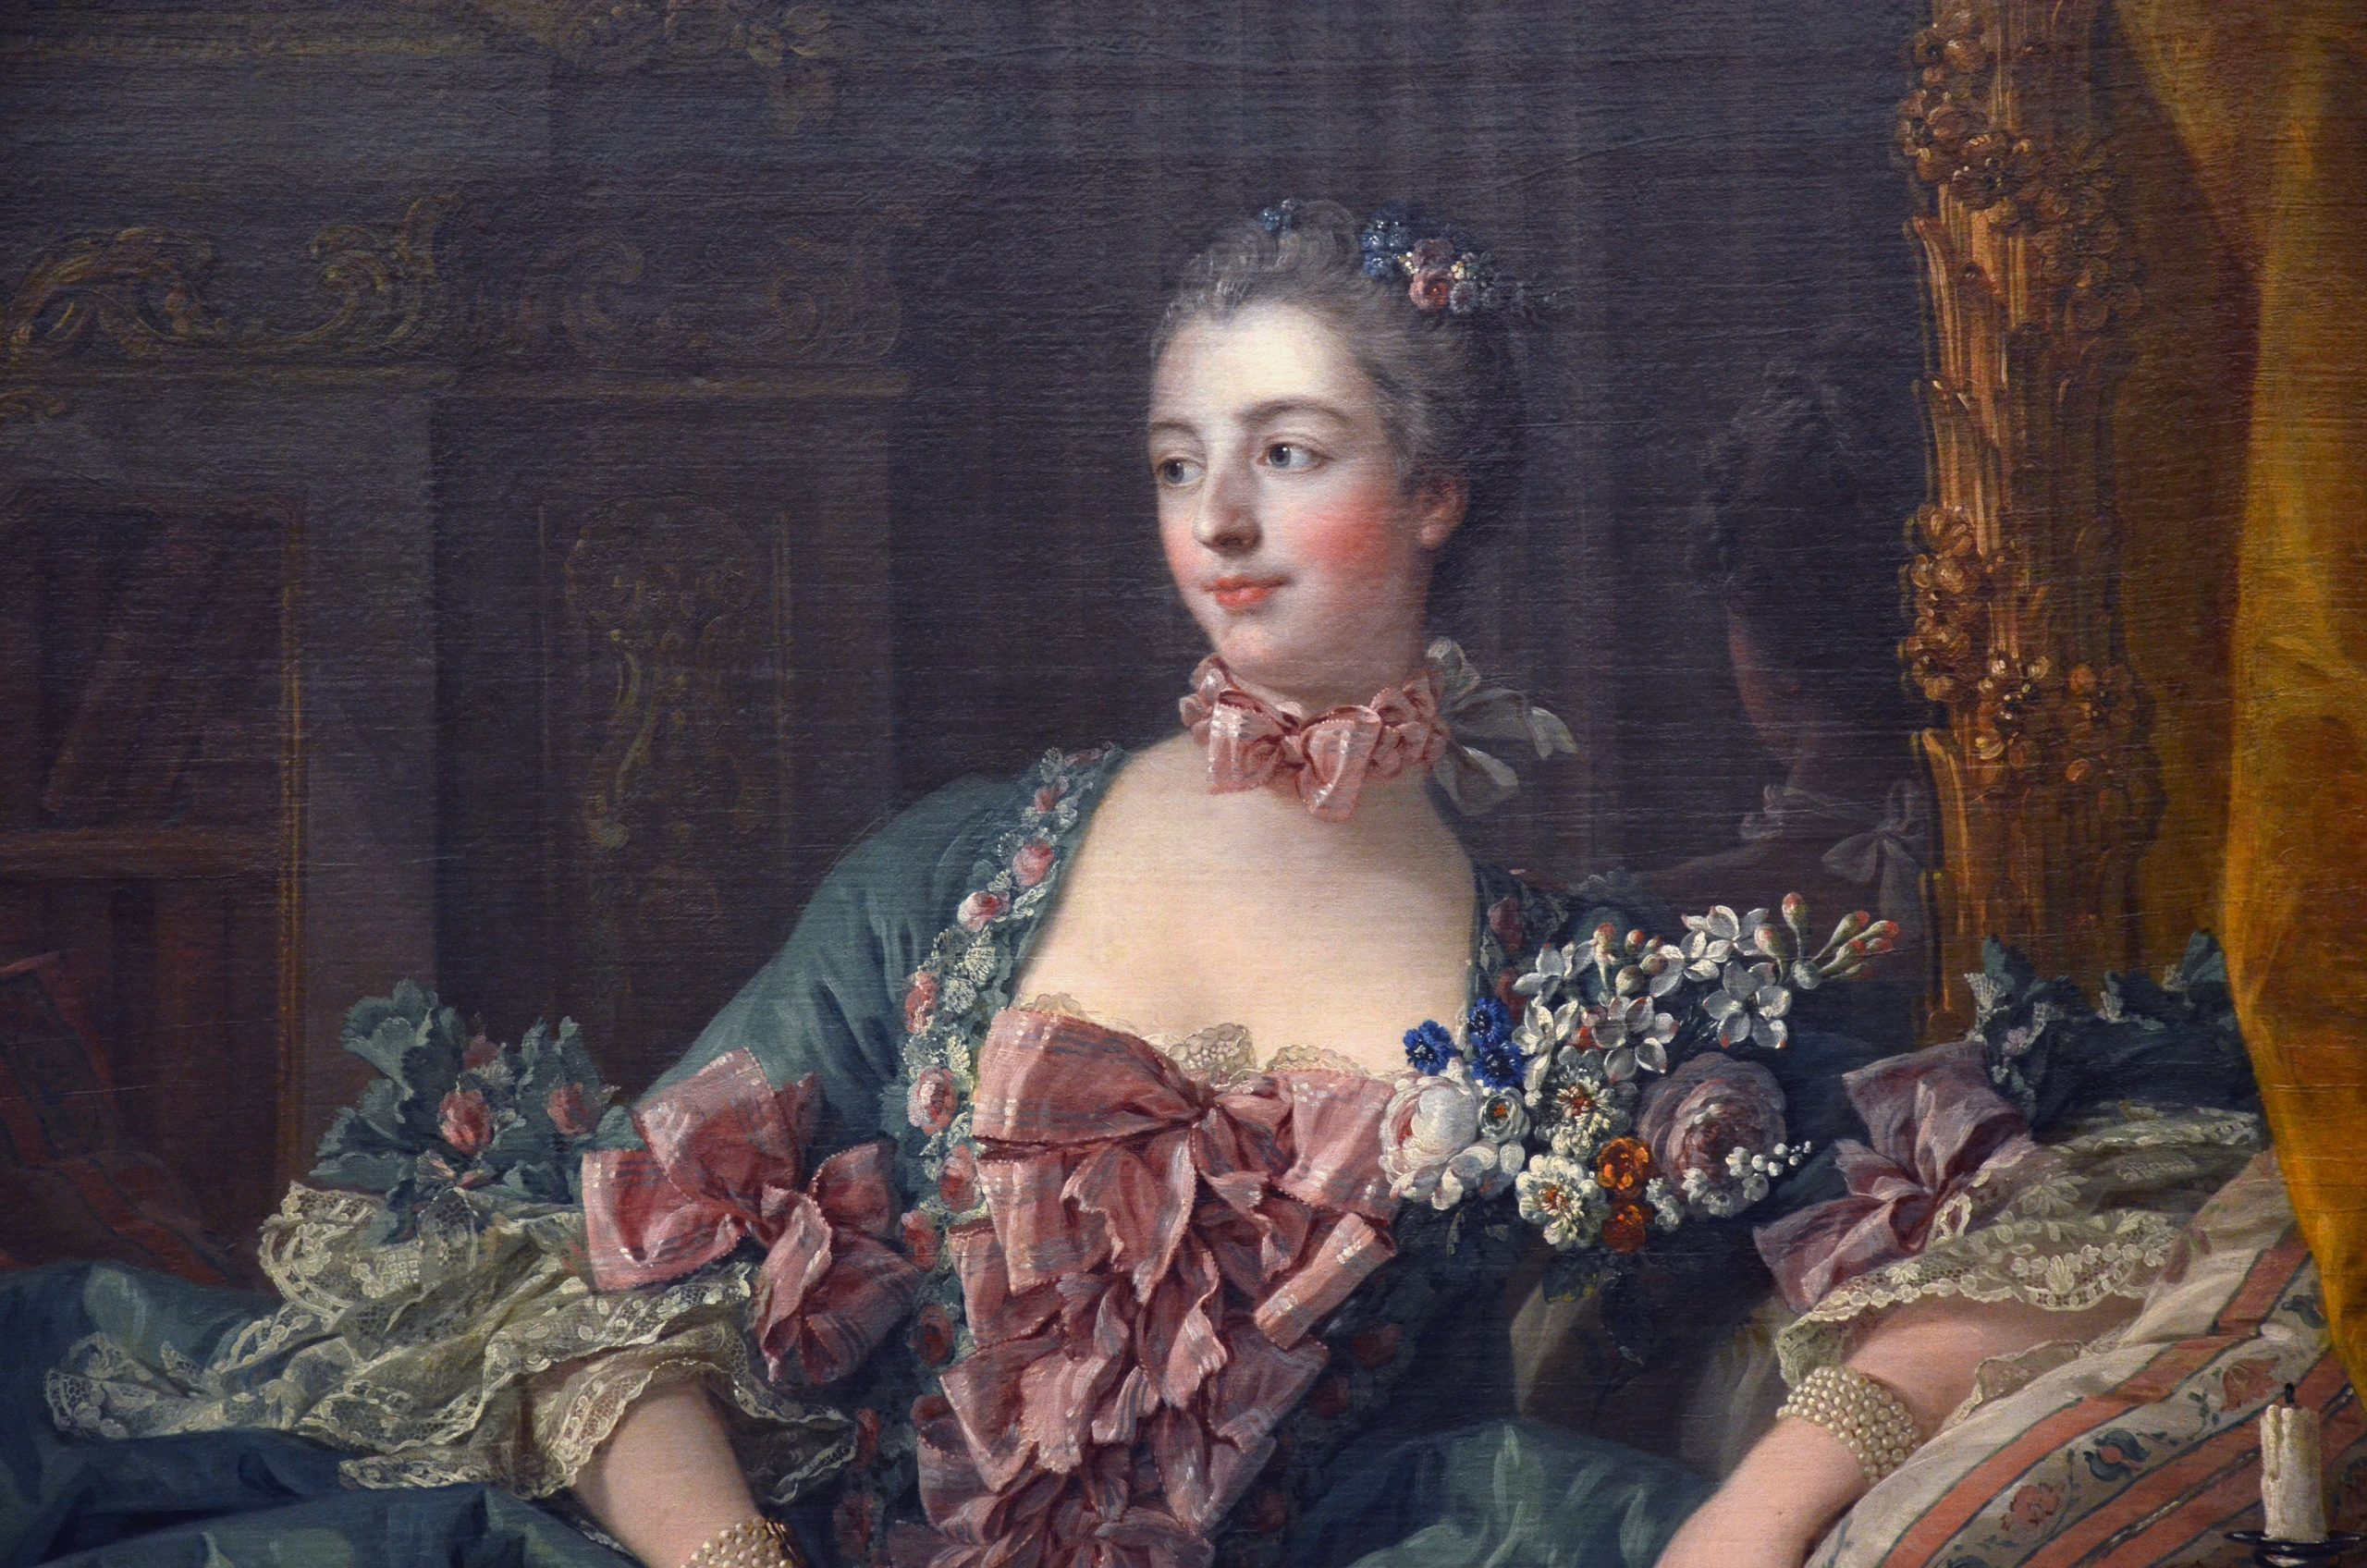 a cropped portrait of Madame de Pompadour by François Boucher (1756)